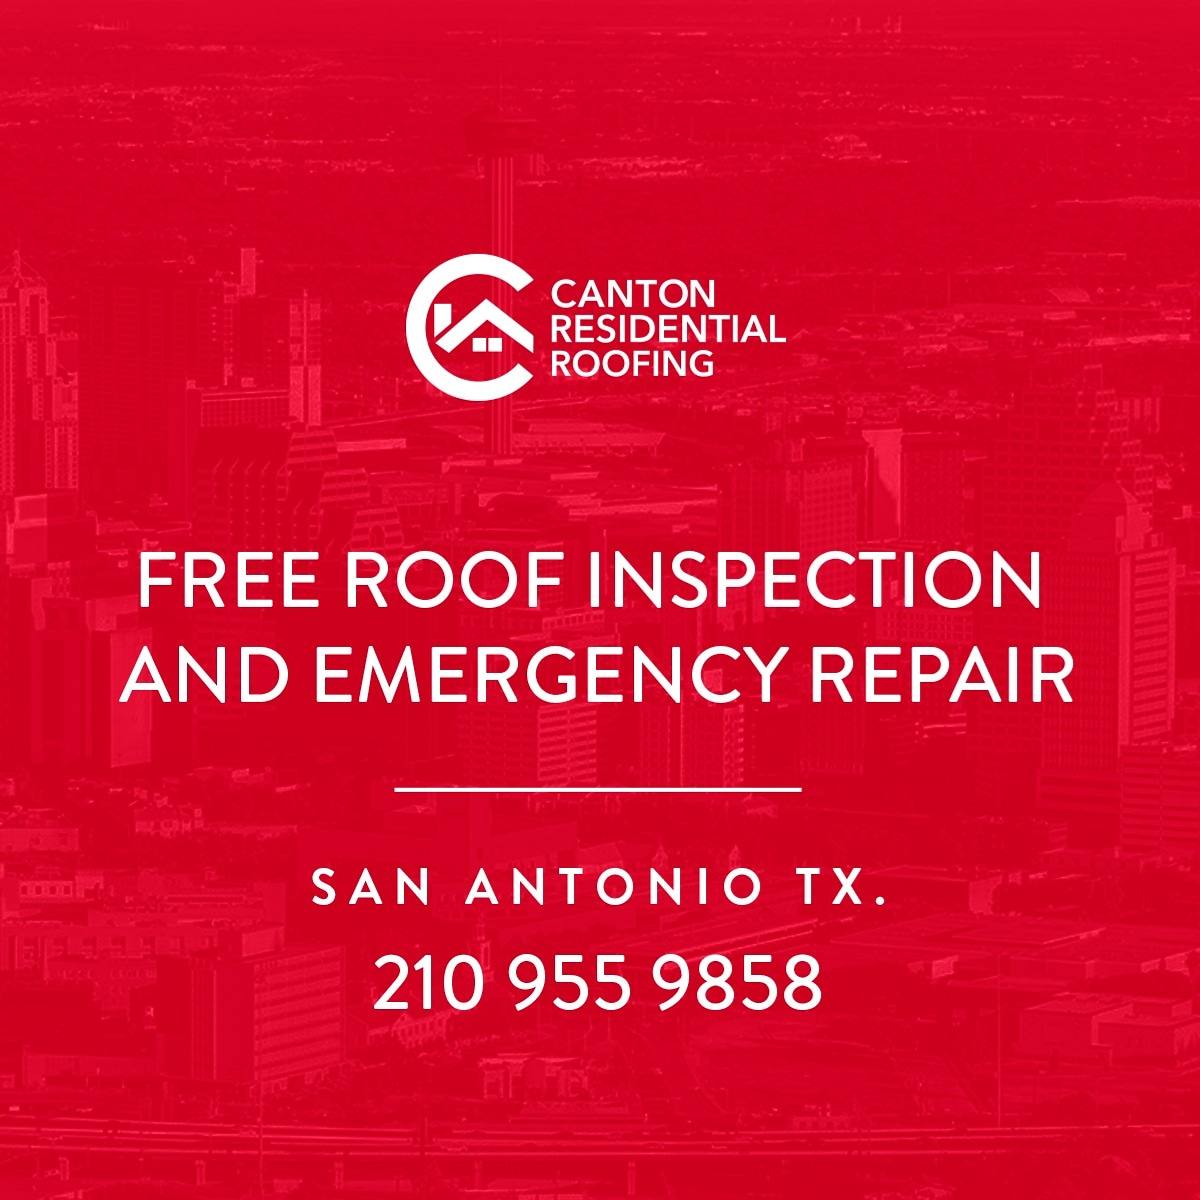 Canton Residential Roofing Cantonroofing Twitter